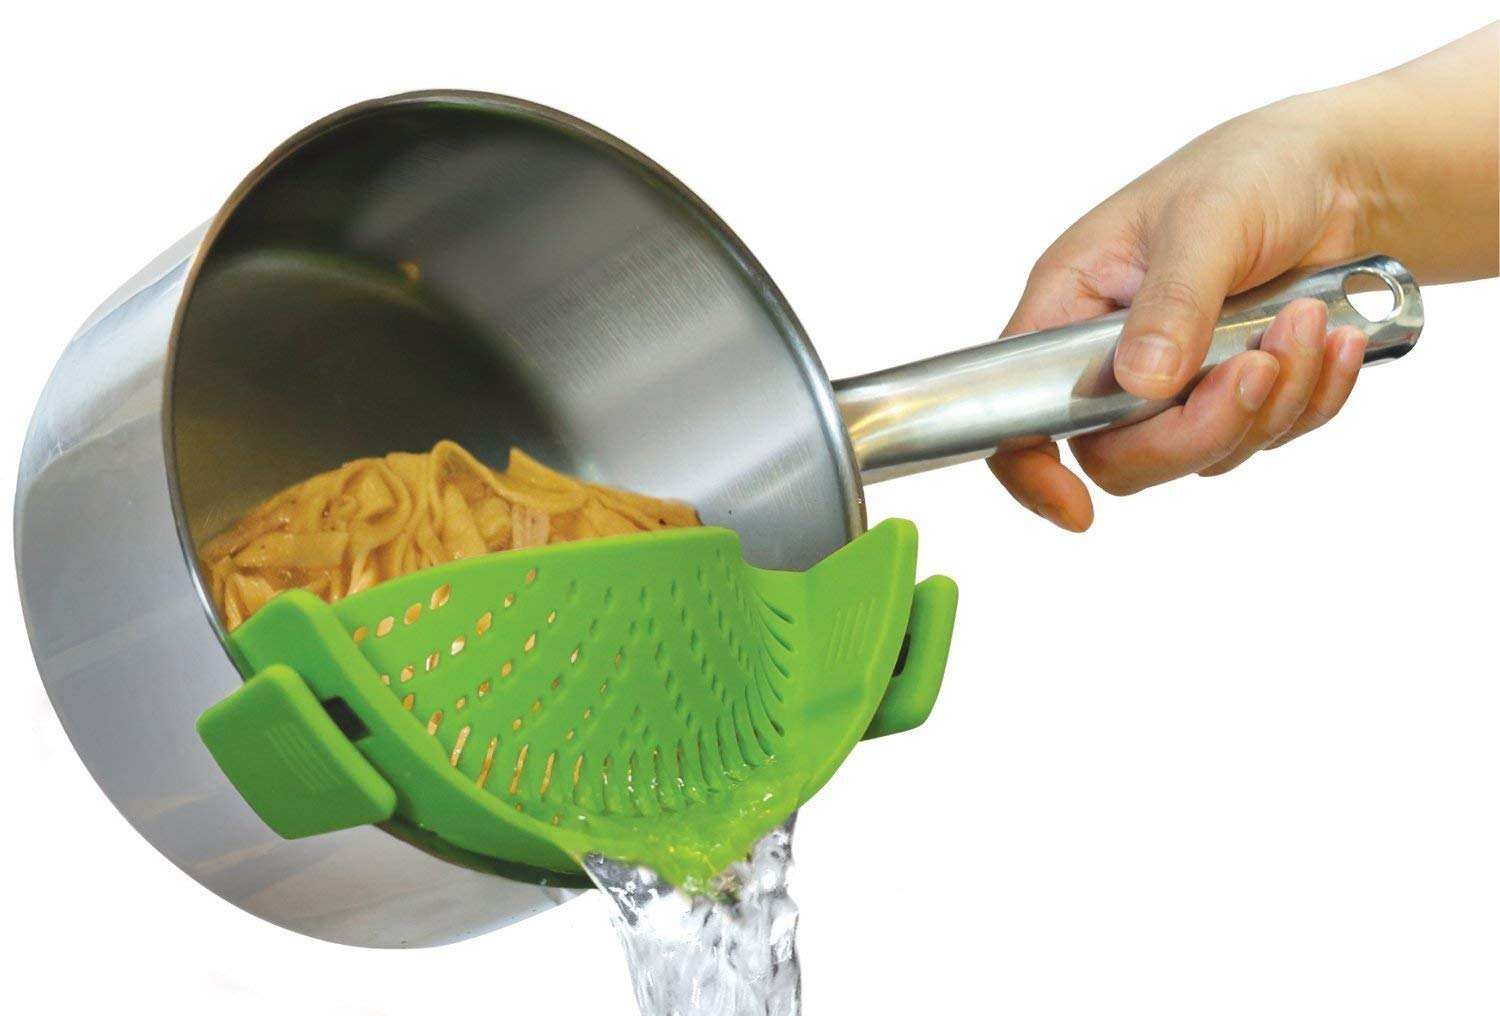 PrimeSons Clip-On Kitchen Food Strainer for Spaghetti, Pasta, and Ground Beef Cheese, Colander and Sieve Snaps on Bowls, Pots and Pans by PrimeSons